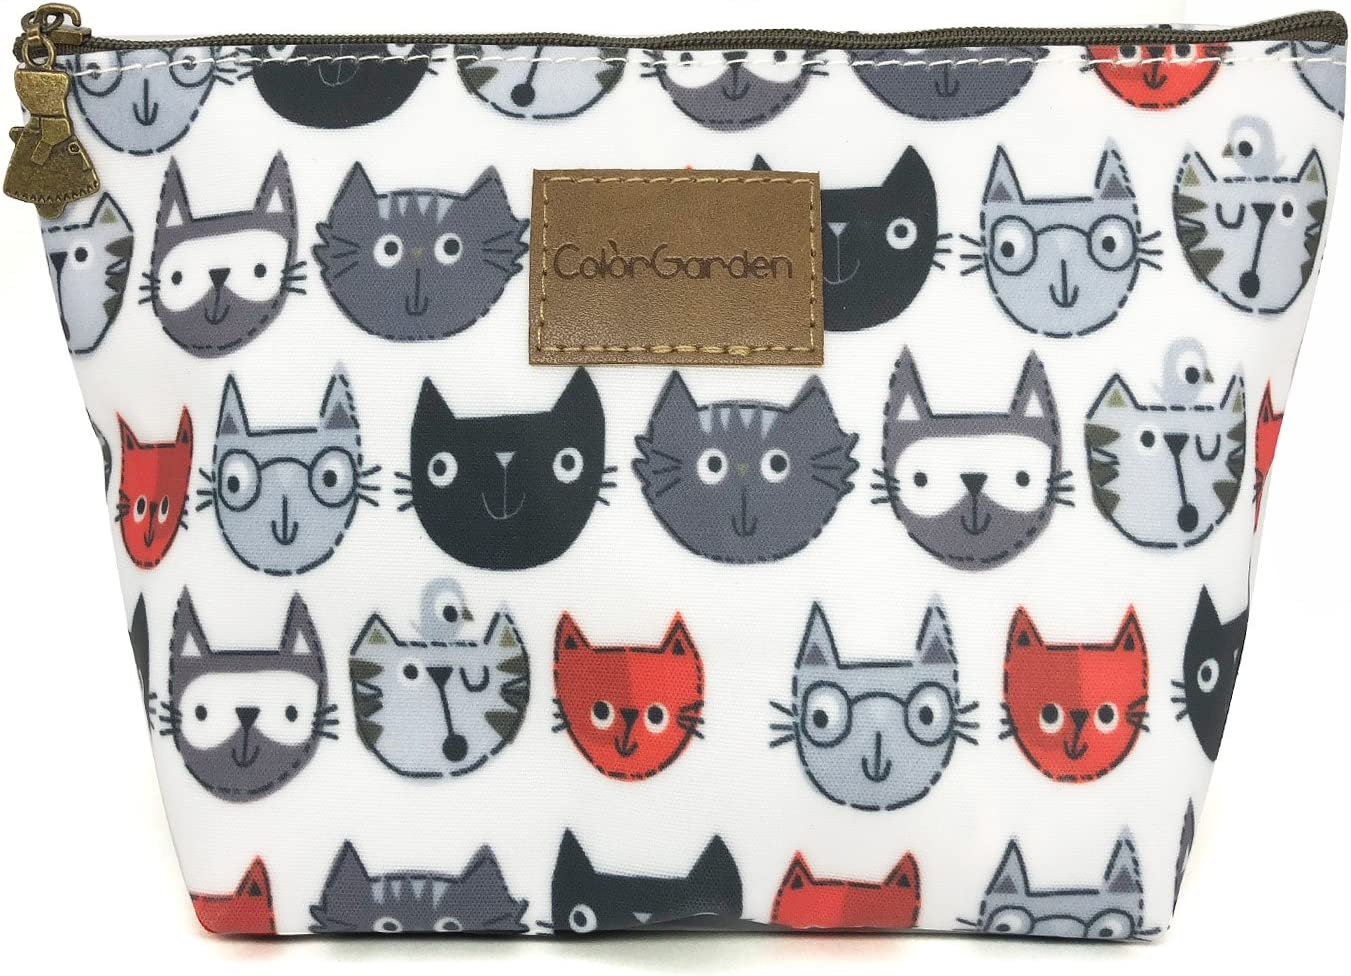 HUNGER Cute Cats Make-Up Cosmetic Bag Carry Case , 14 Patterns (P11417020)